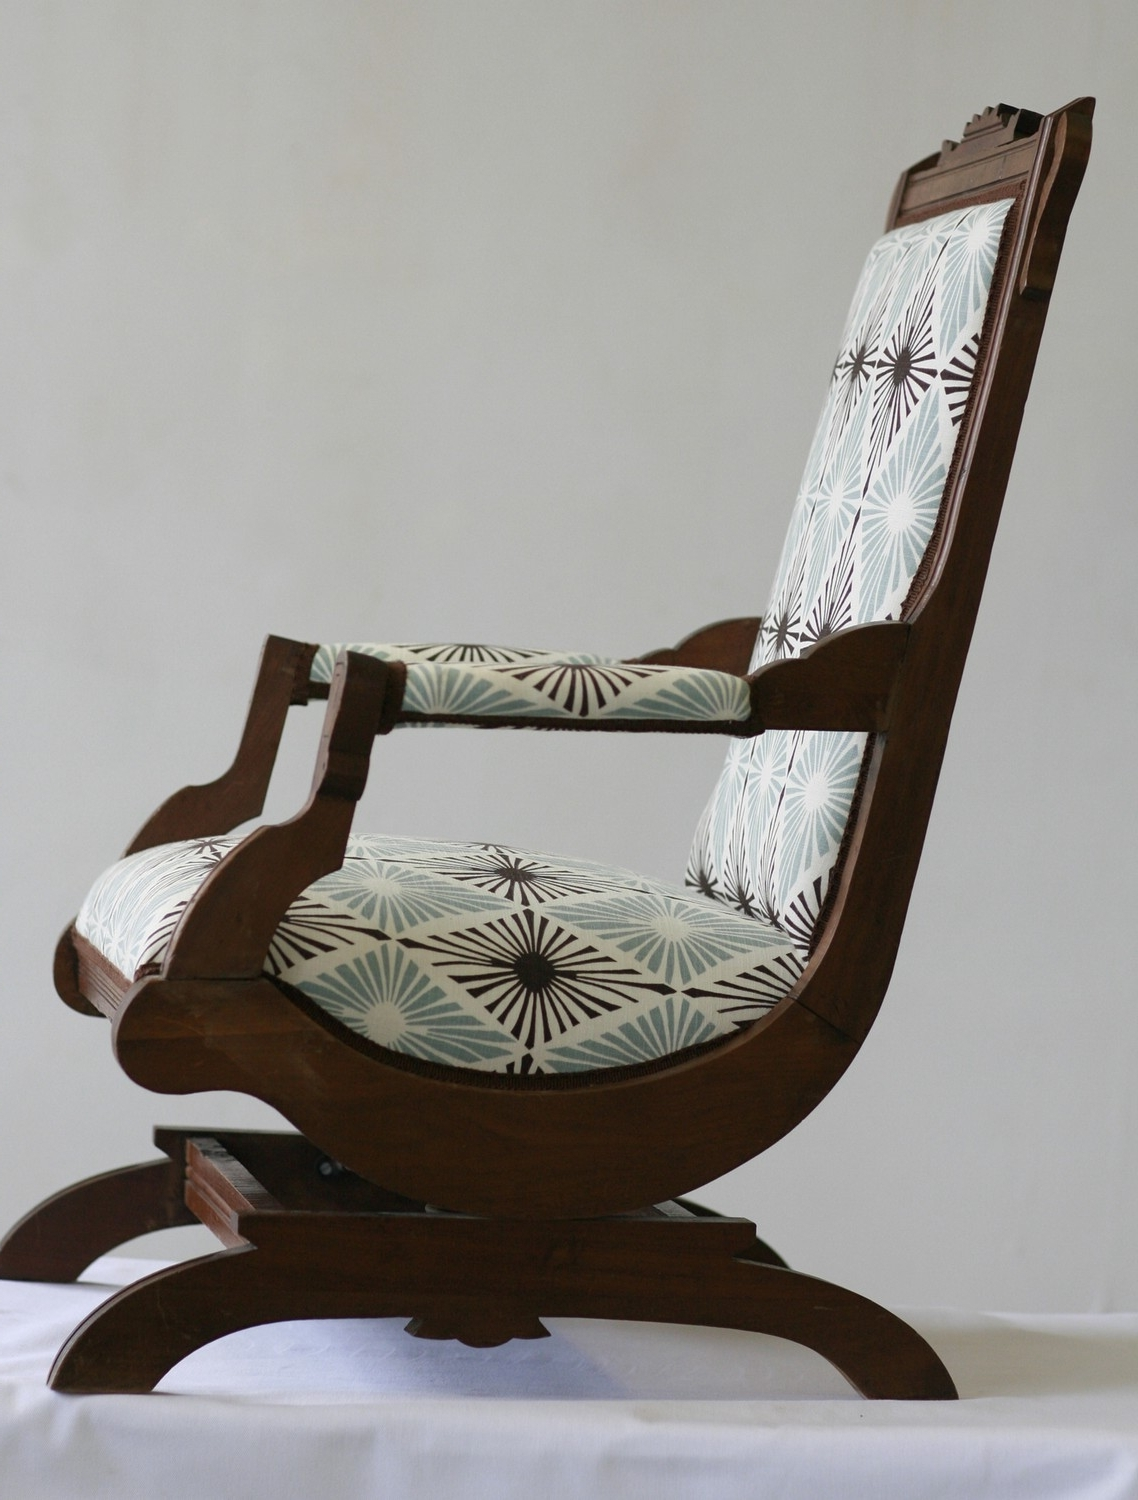 54 Antique Rocking Chair, Online Get Cheap Antique Rocking Chairs Inside Preferred Rocking Chairs With Springs (Gallery 6 of 15)